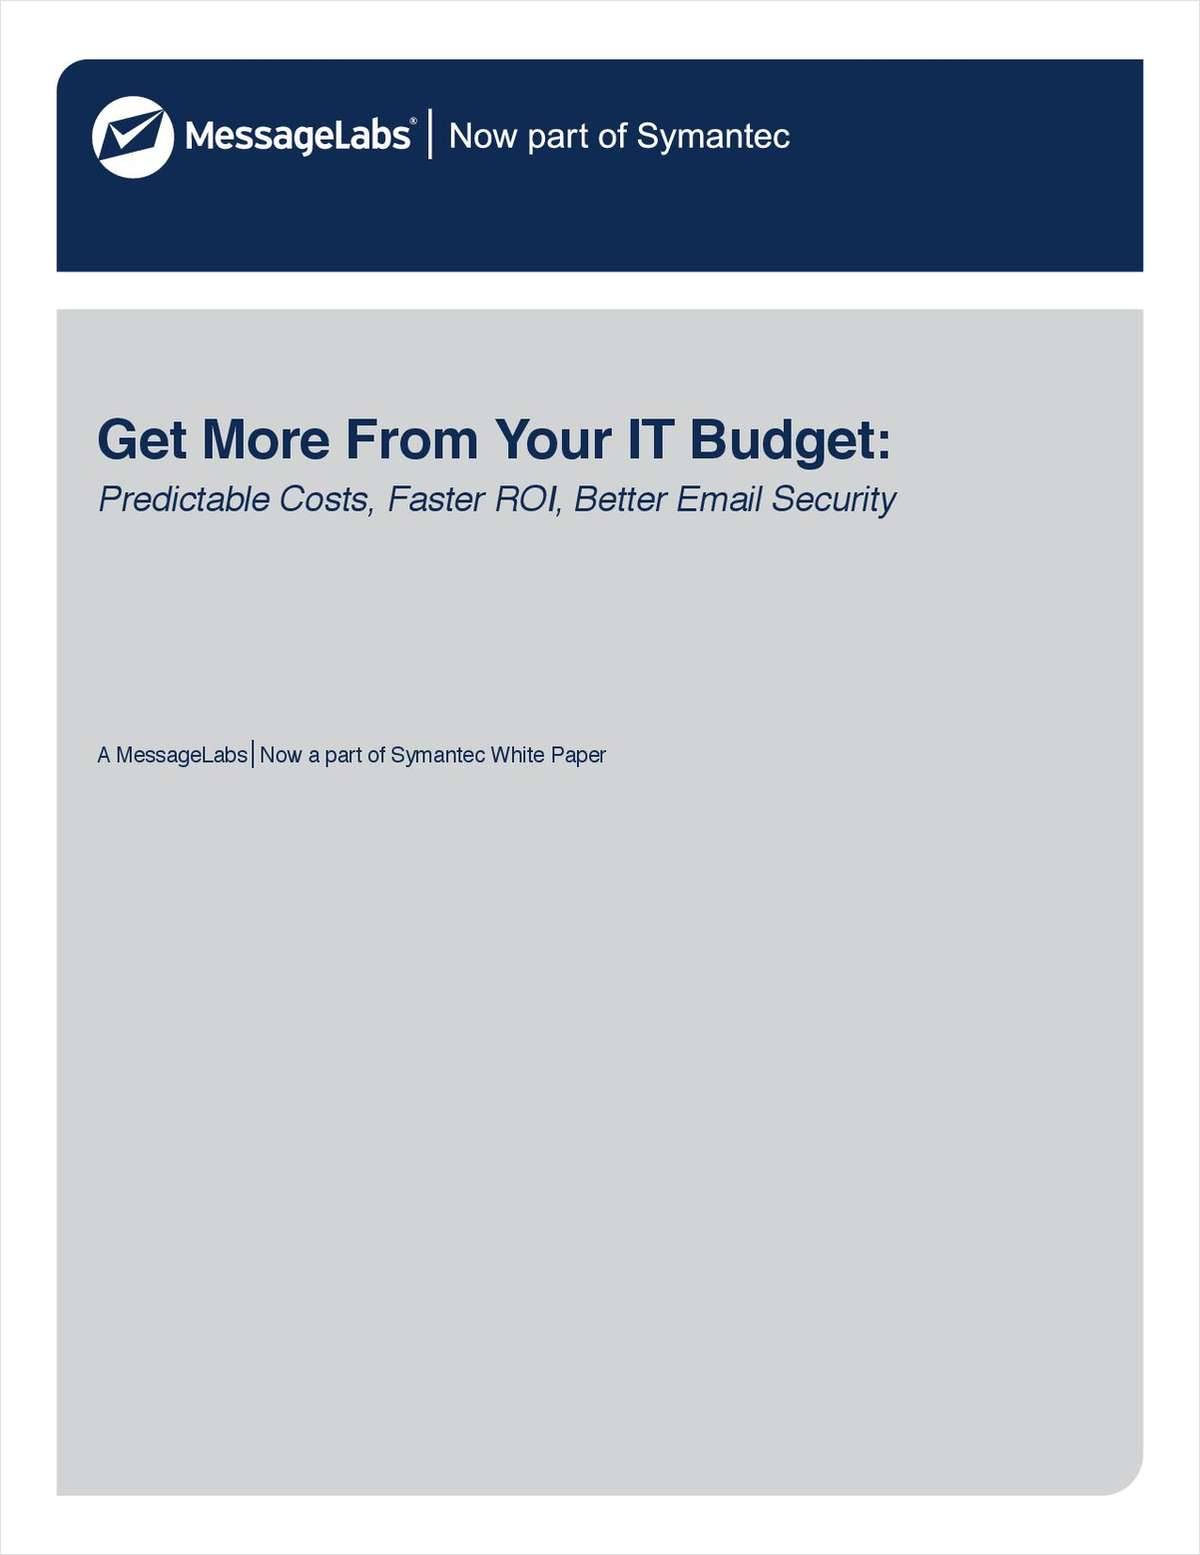 Get More from Your IT Budget